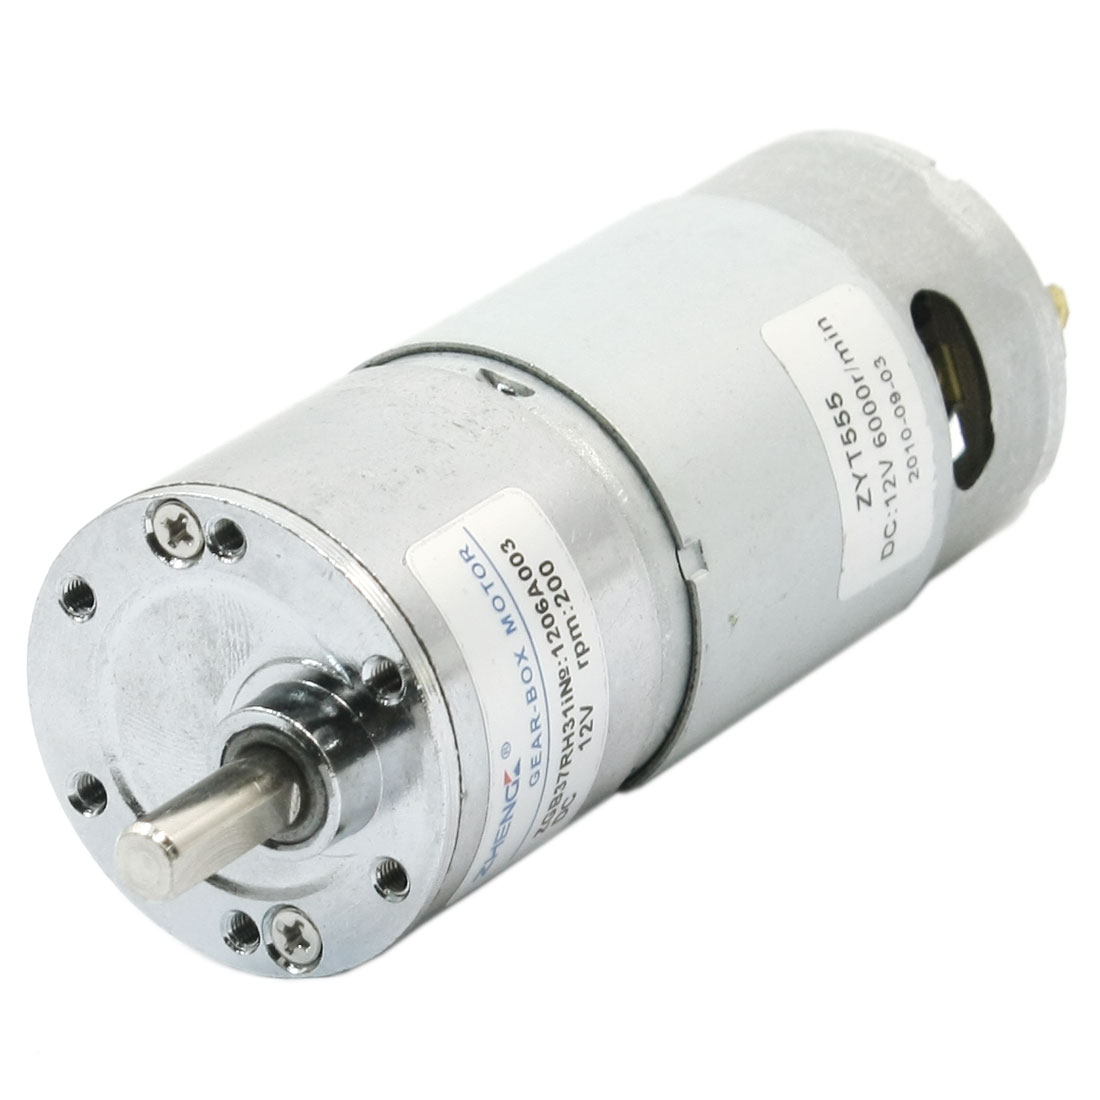 6mm x 15mm Shaft Reduction Ratio 6000RPM 200RPM Rotary Speed Reducing 2Pin Connect Cylinder Shape High Torque Gearbox Motor DC24V